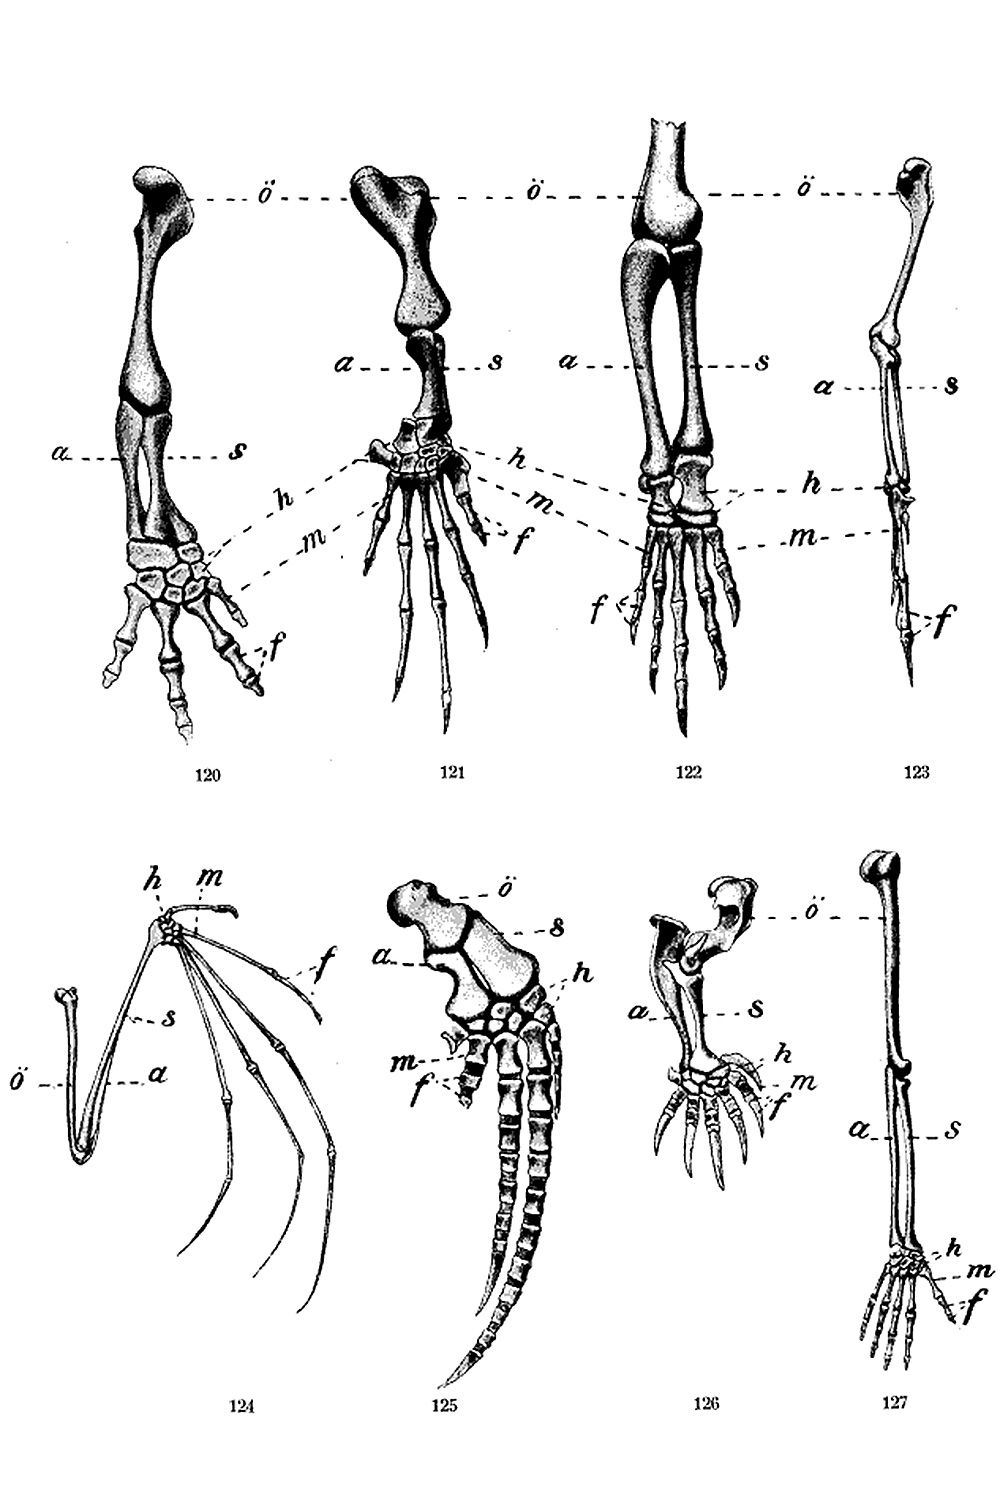 Anatomy, Evolution, and Homologous Structures